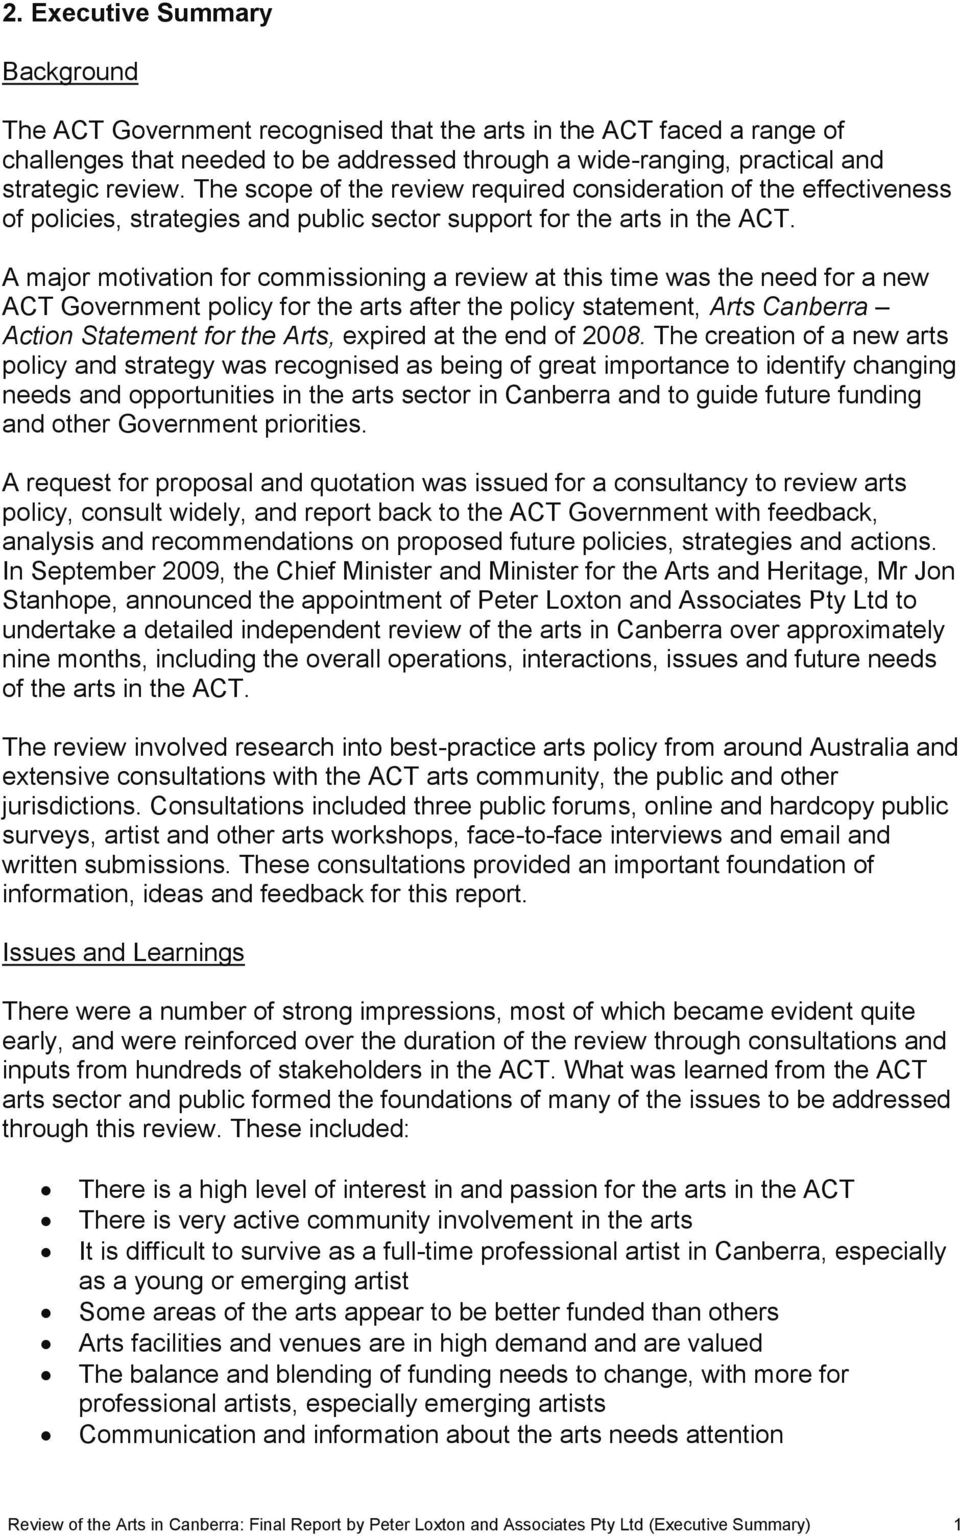 A major motivation for commissioning a review at this time was the need for a new ACT Government policy for the arts after the policy statement, Arts Canberra Action Statement for the Arts, expired